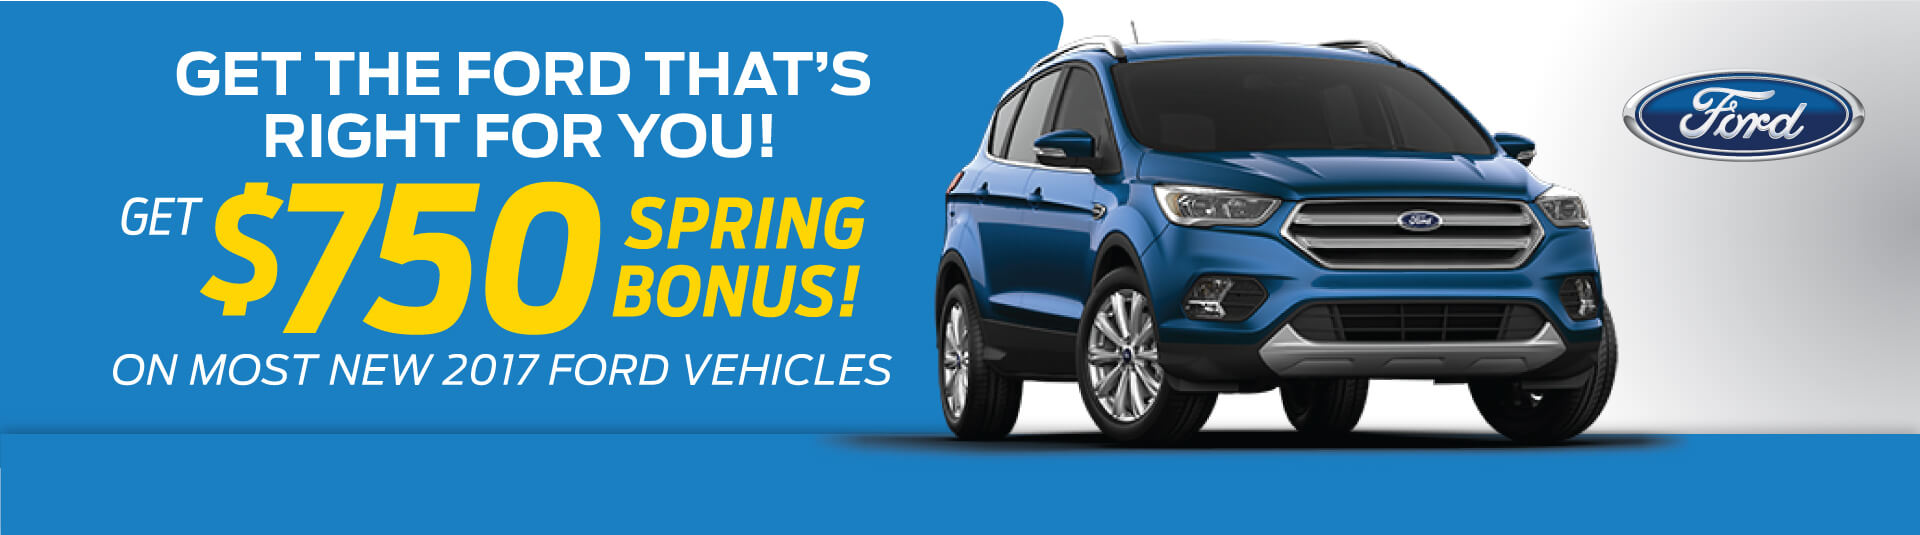 Ford New Vehicle Offer - April 2017